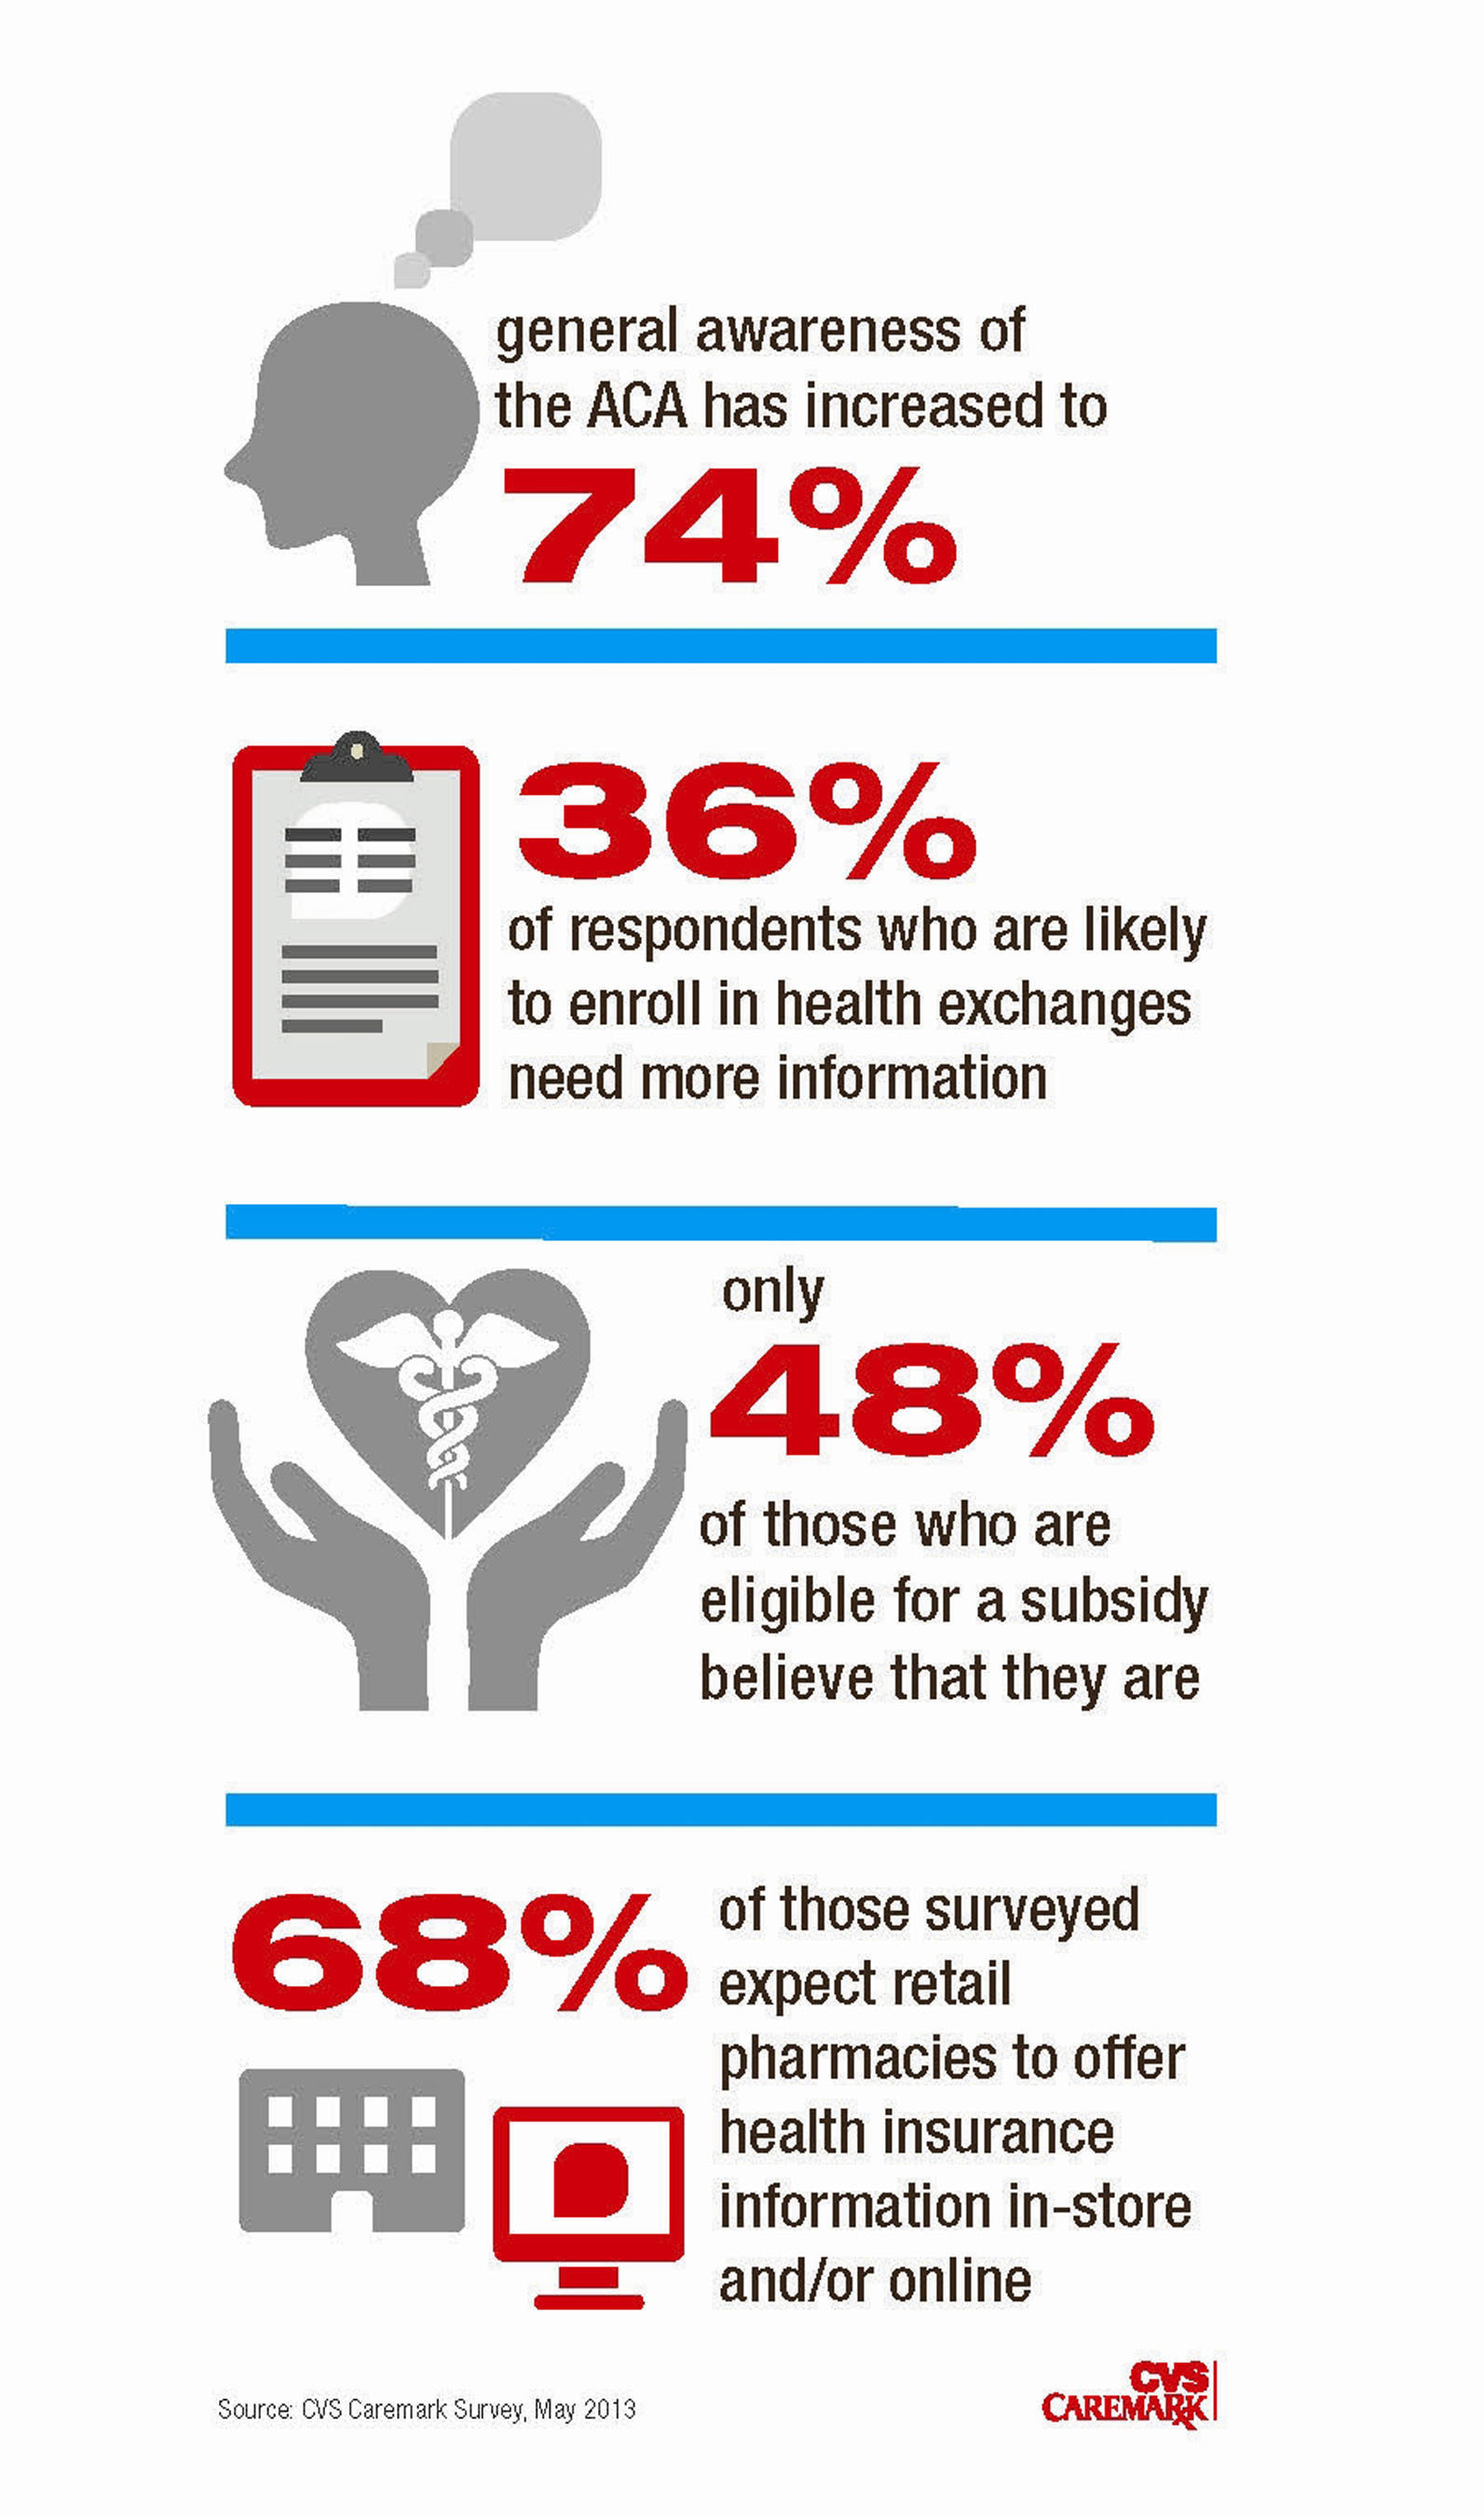 cvs caremark survey spotlights affordable care act knowledge gap